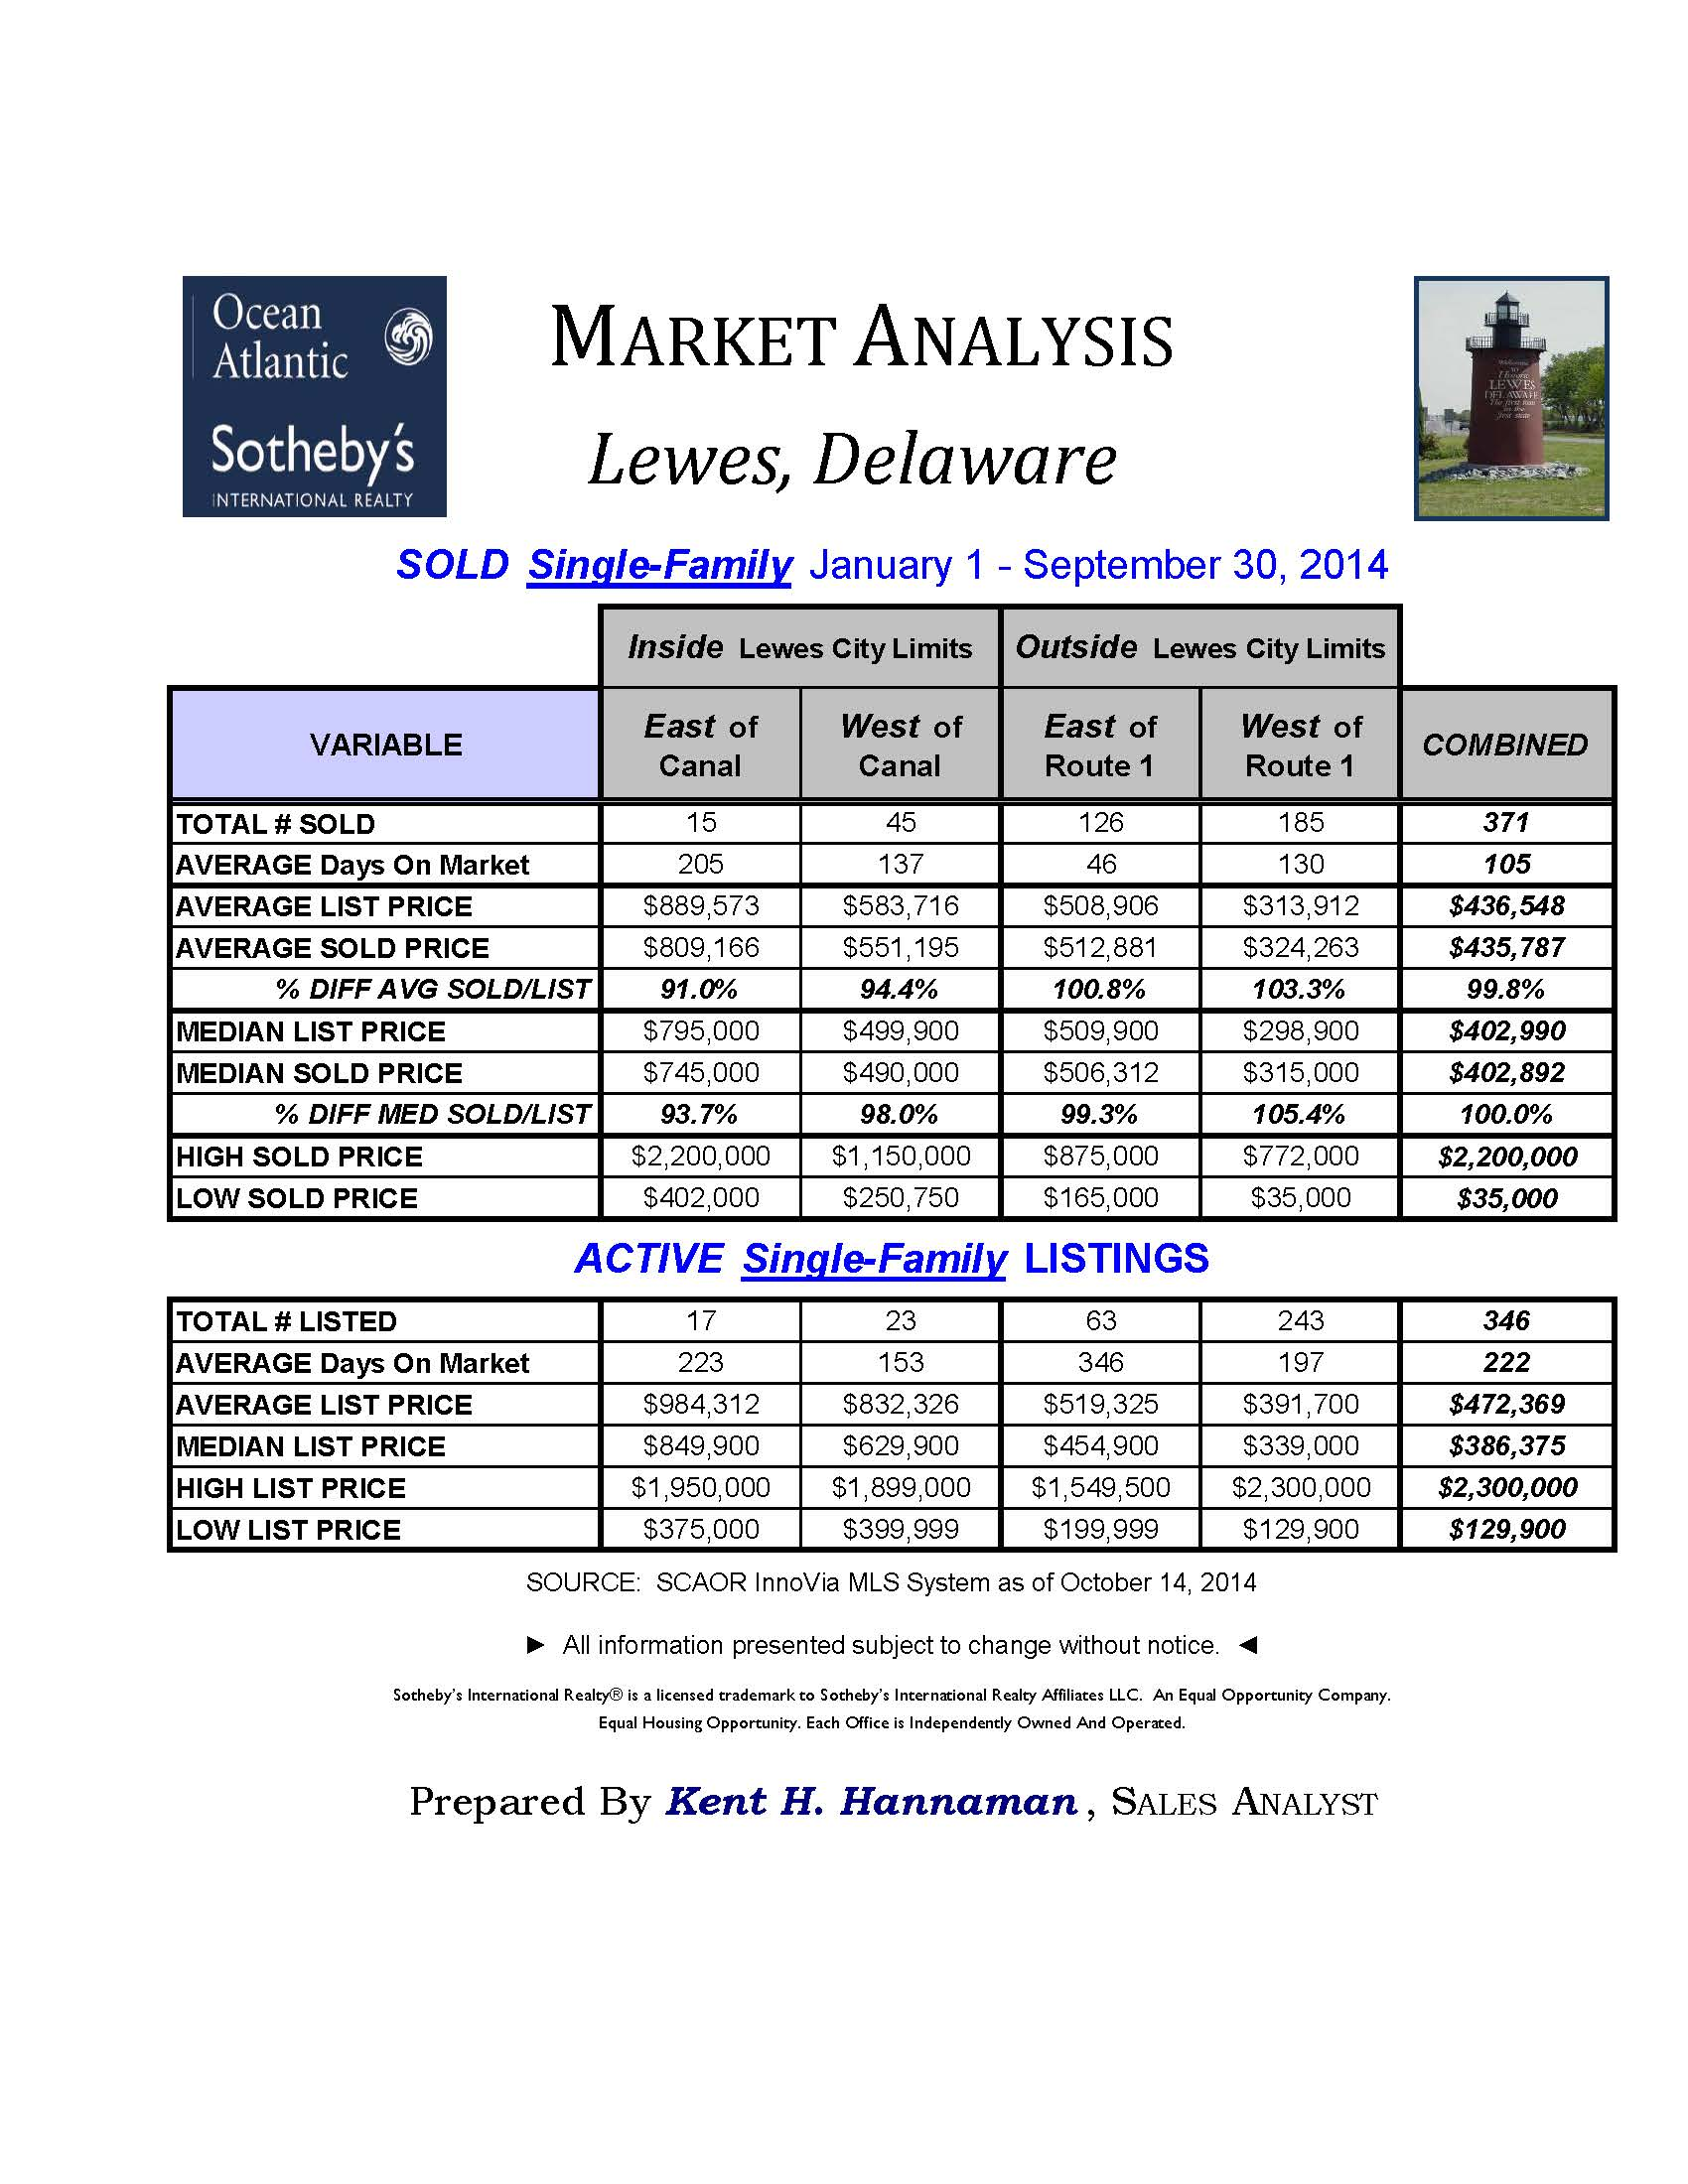 Ocean Atlantic Sotheby's Market Analysis - Single Family Home Sales data for Lewes, Delaware 2014